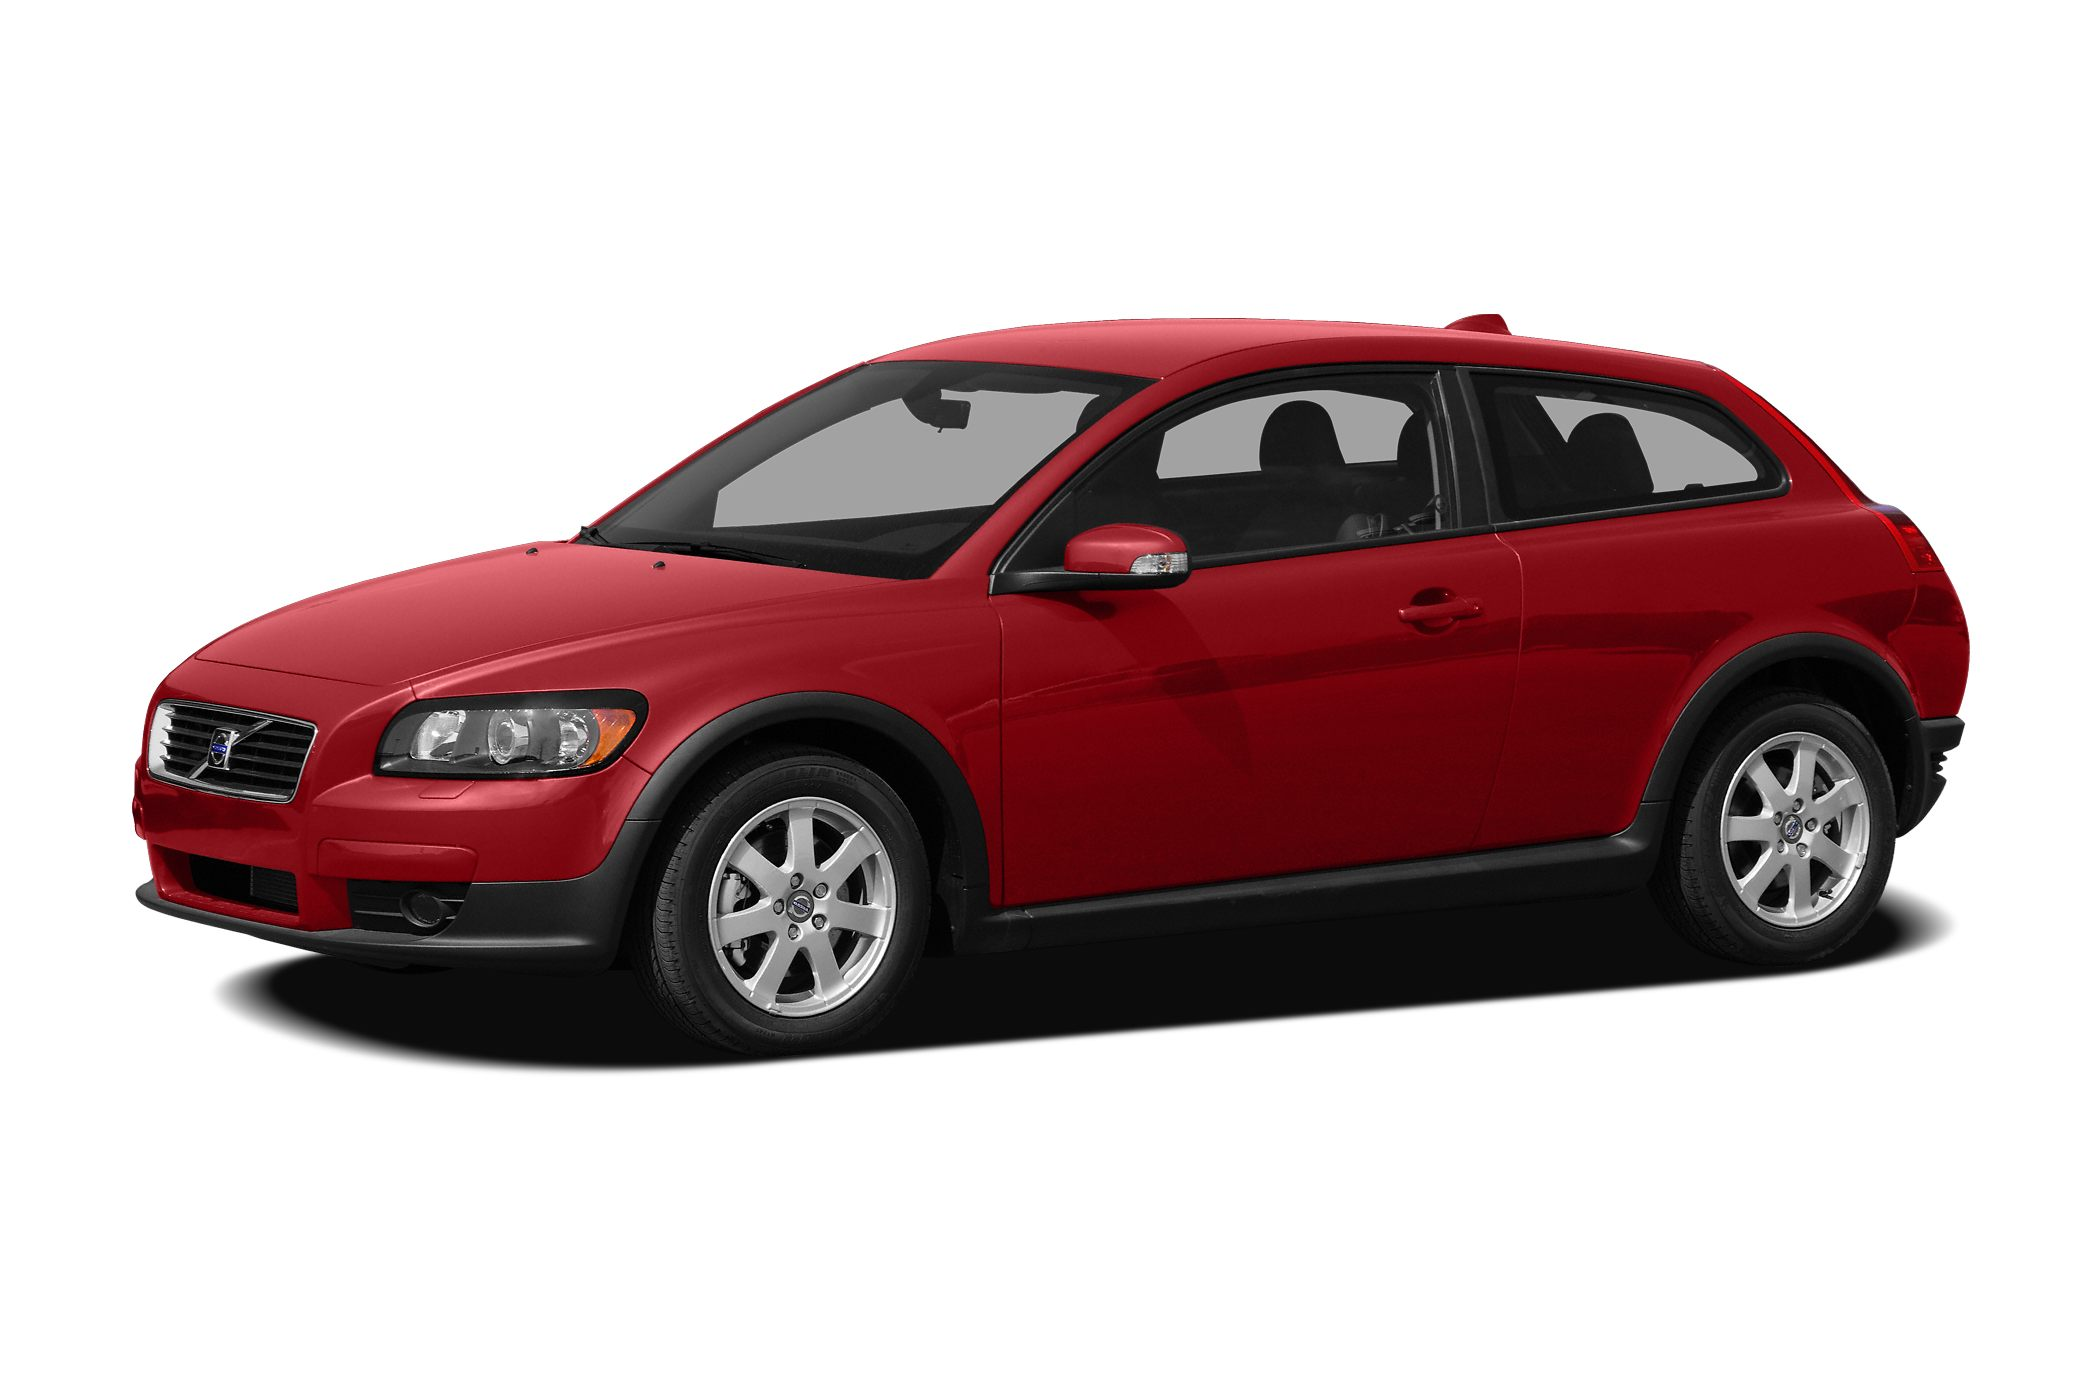 CAB90VOC201A2101 Great Description About Volvo C30 R Design with Interesting Gallery Cars Review